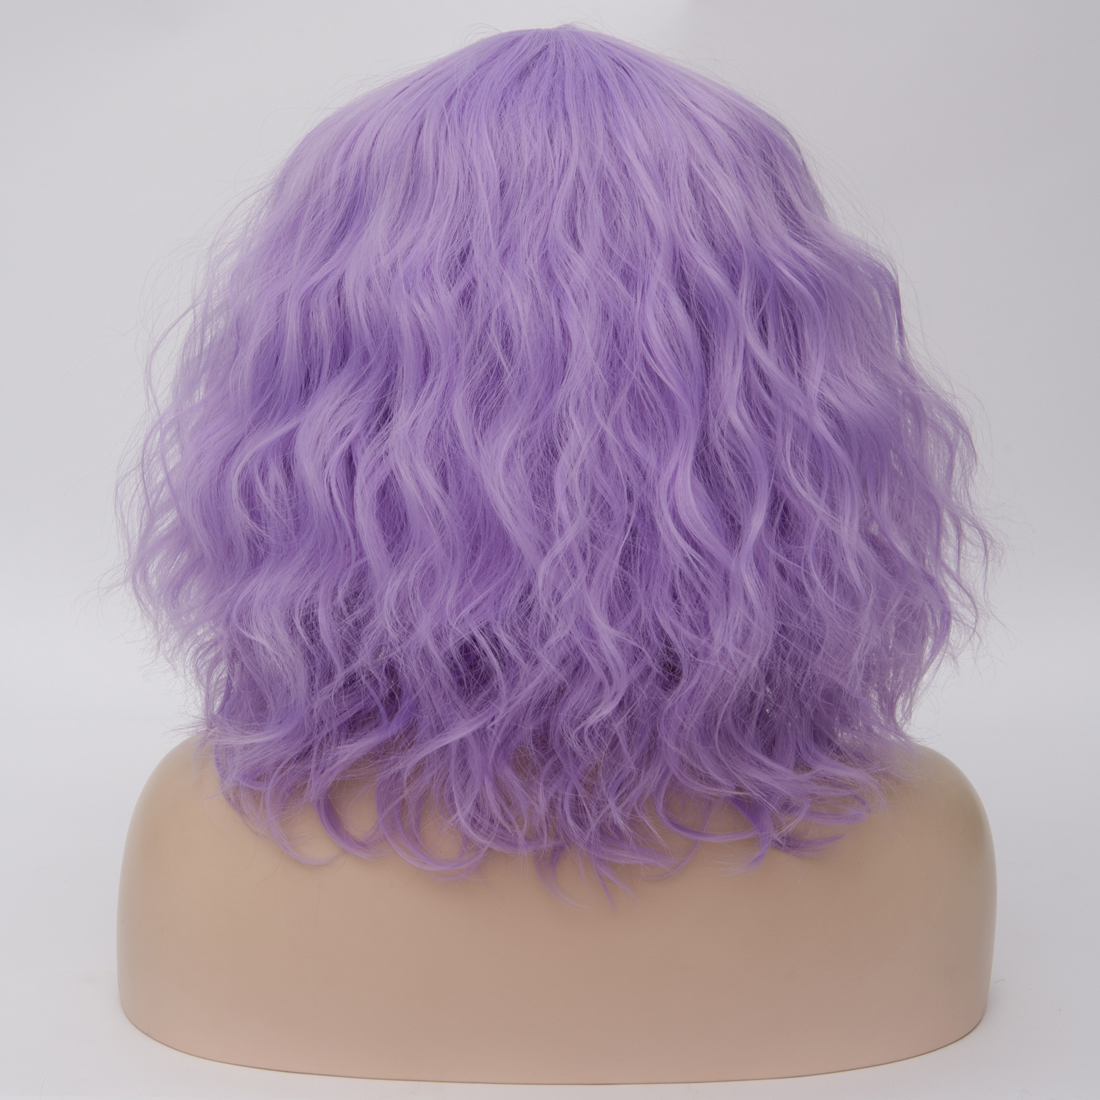 H9f245df7aba74ad99952d571d93616bdz - Similler Short Synthetic Wig for Women Cosplay Curly Hair Heat Resistance Ombre Color Blue Purple Pink Green Orange Two Tones